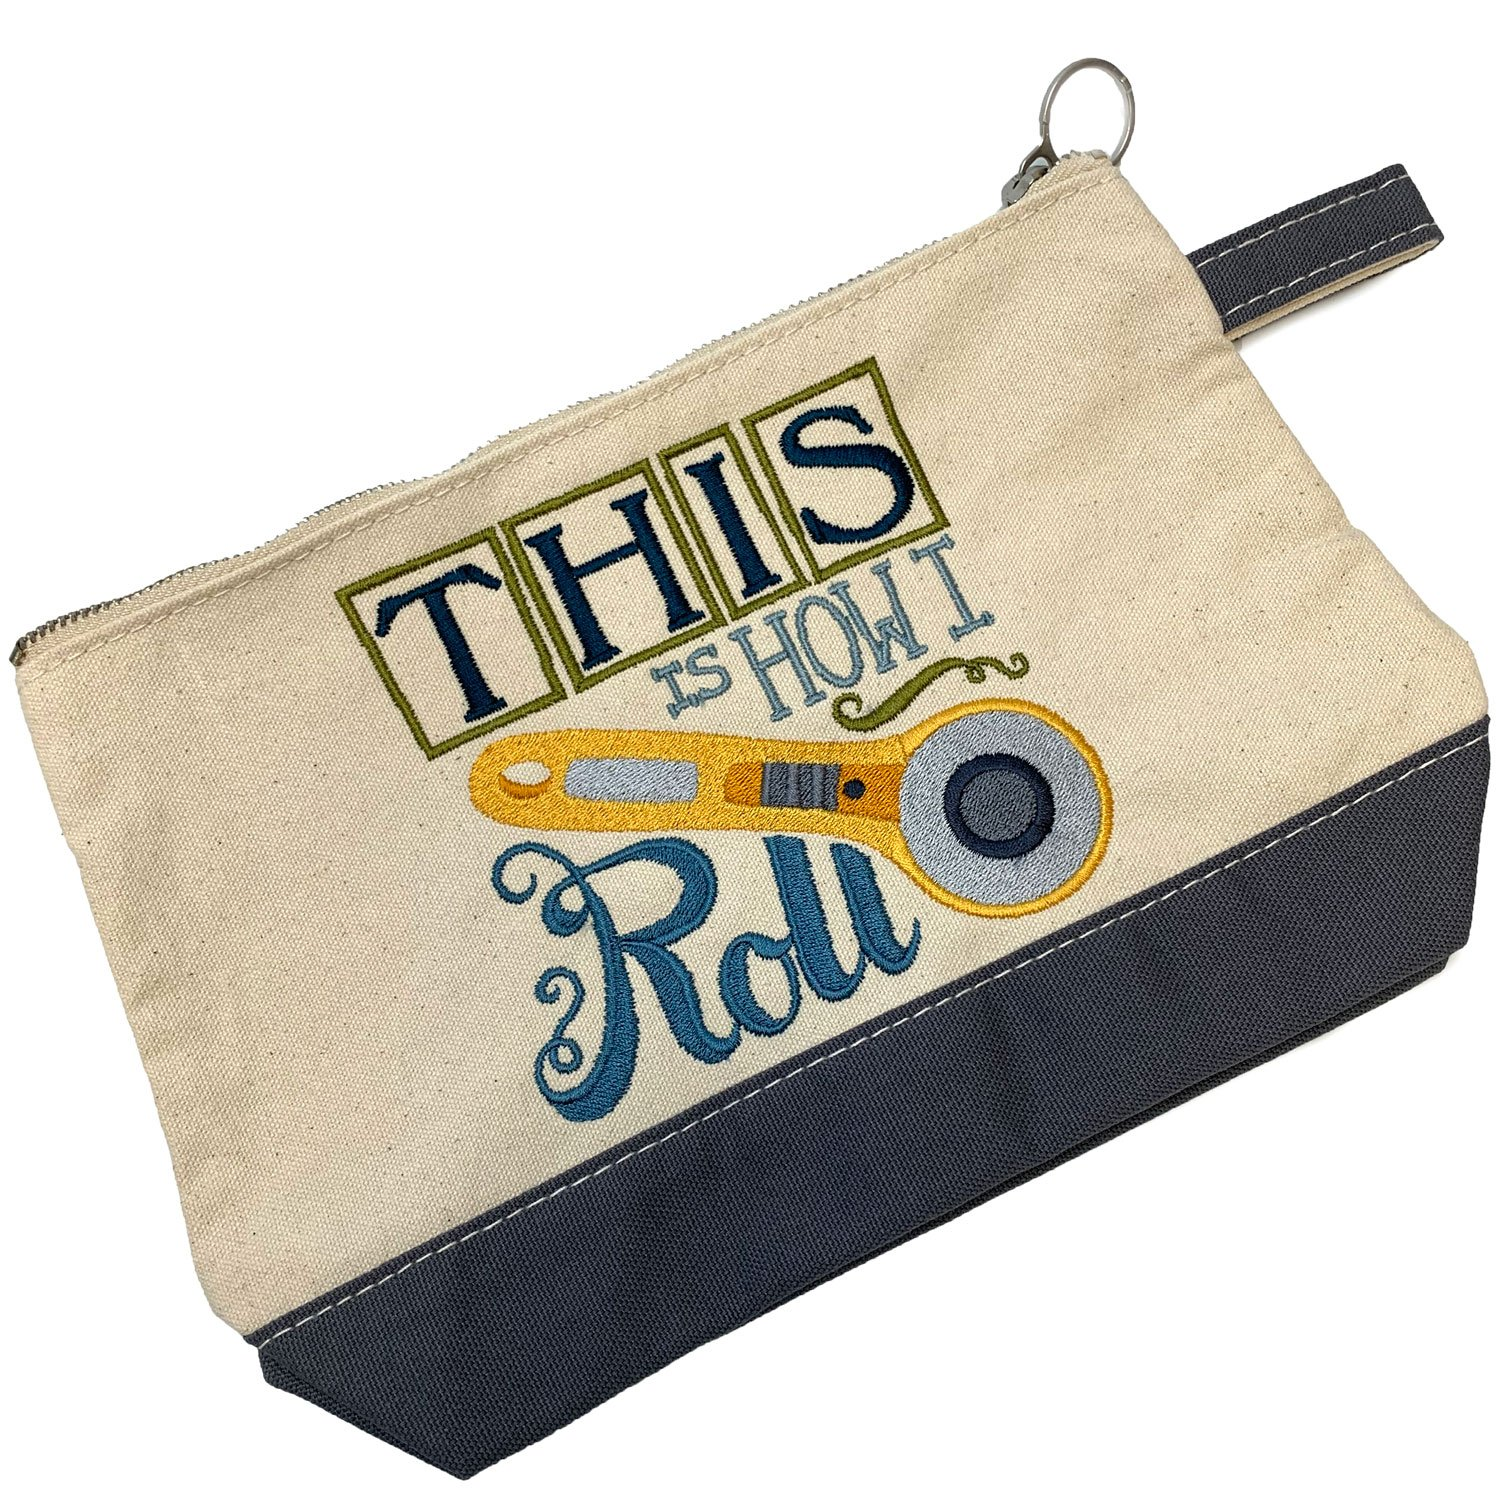 Embroidered Zip Pouch Grey Rotary Cutter